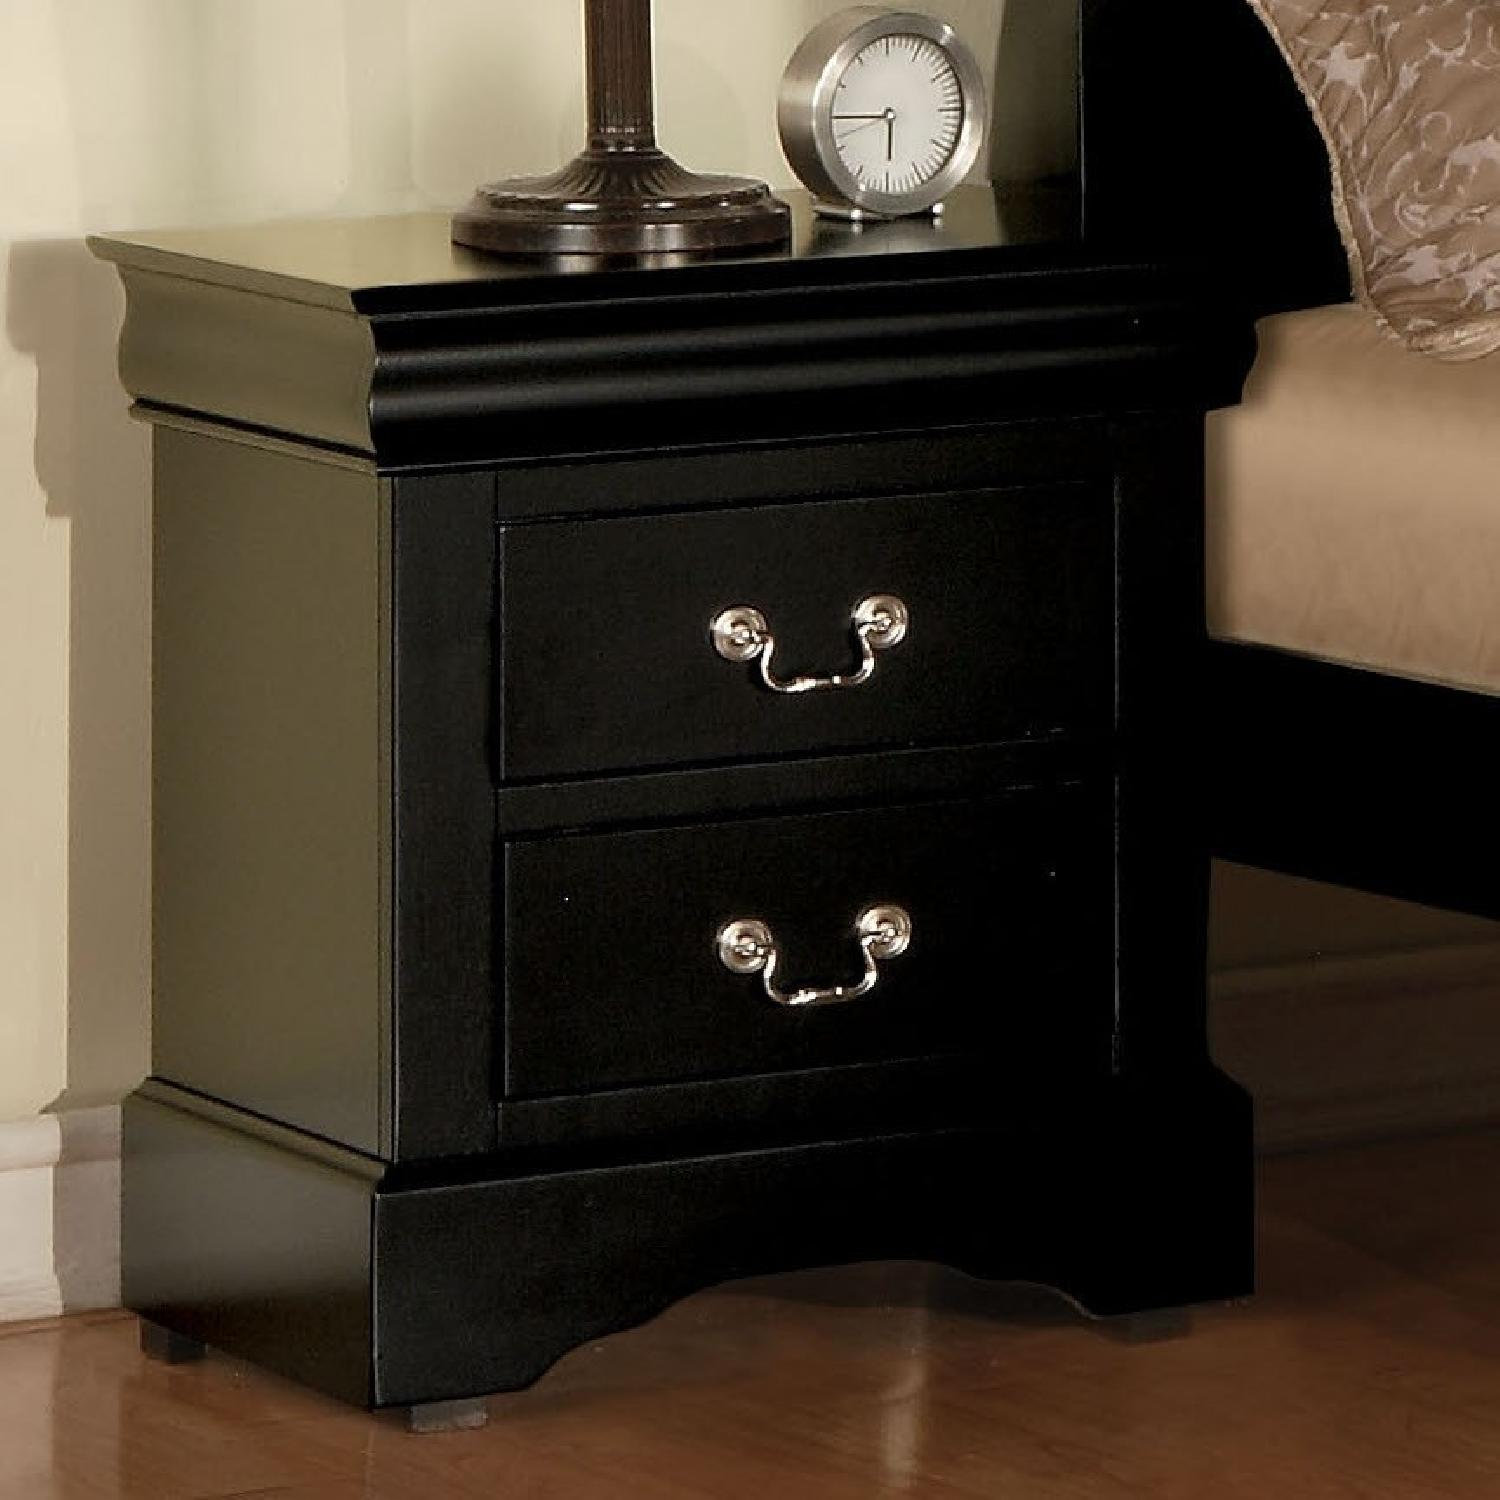 Louis Philippe Style Nightstand in Black Finish - image-2